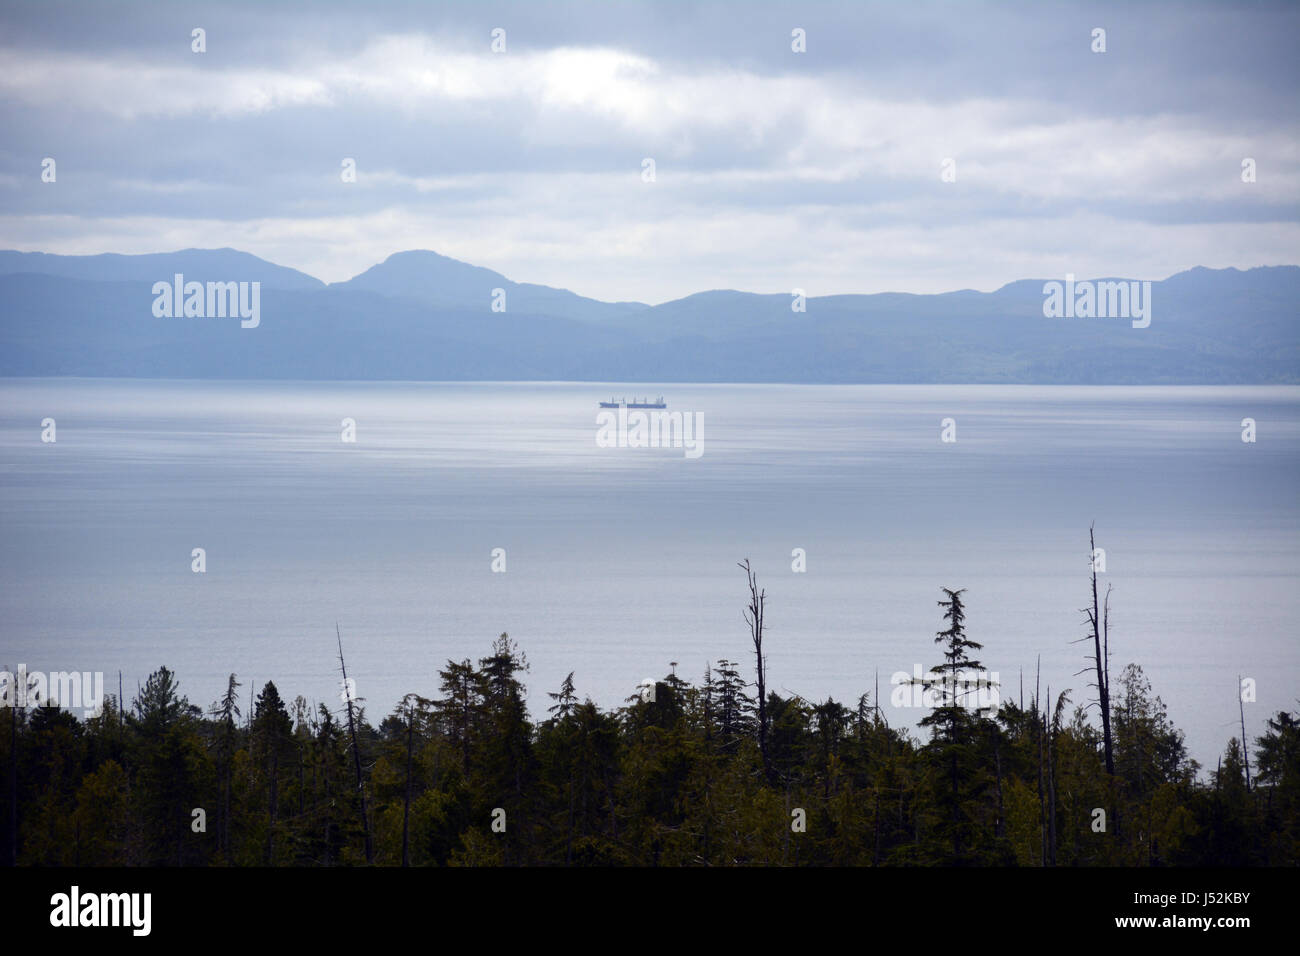 A tanker plies the waters of the Strait of Juan de Fuca between Washington State, United States, and Vancouver Island, - Stock Image